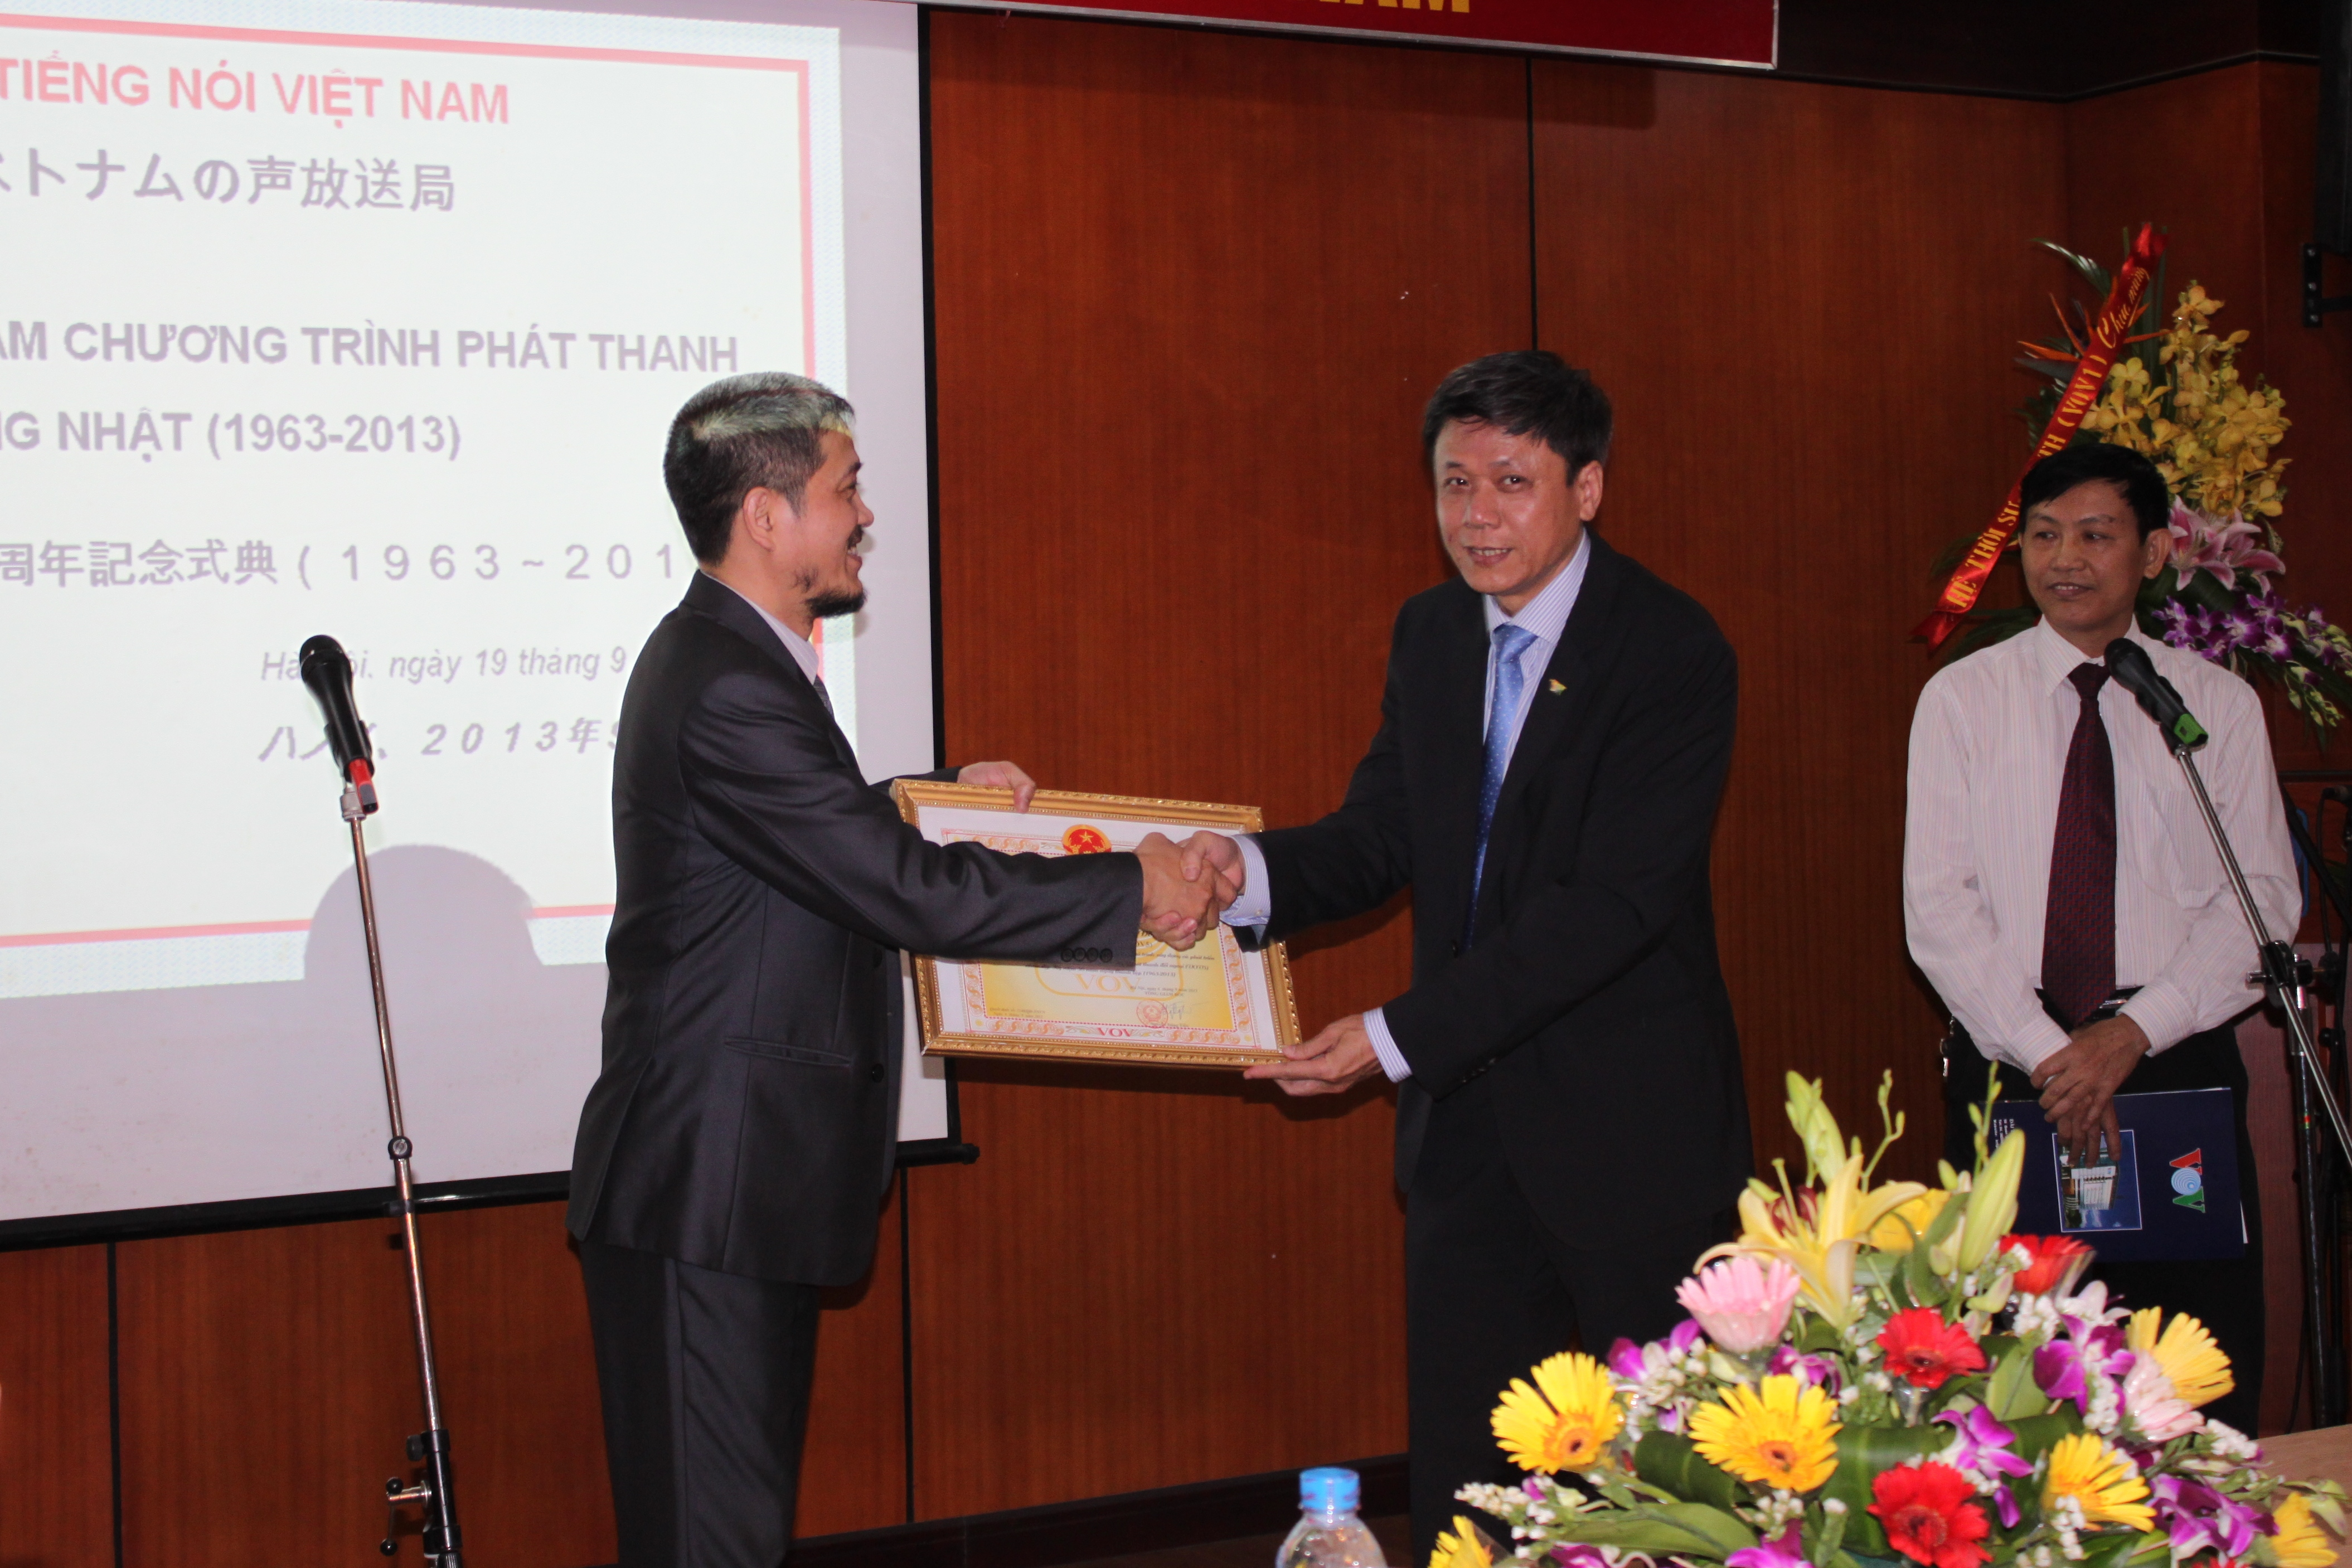 VOV's Japanese section celebrates 50th anniversary